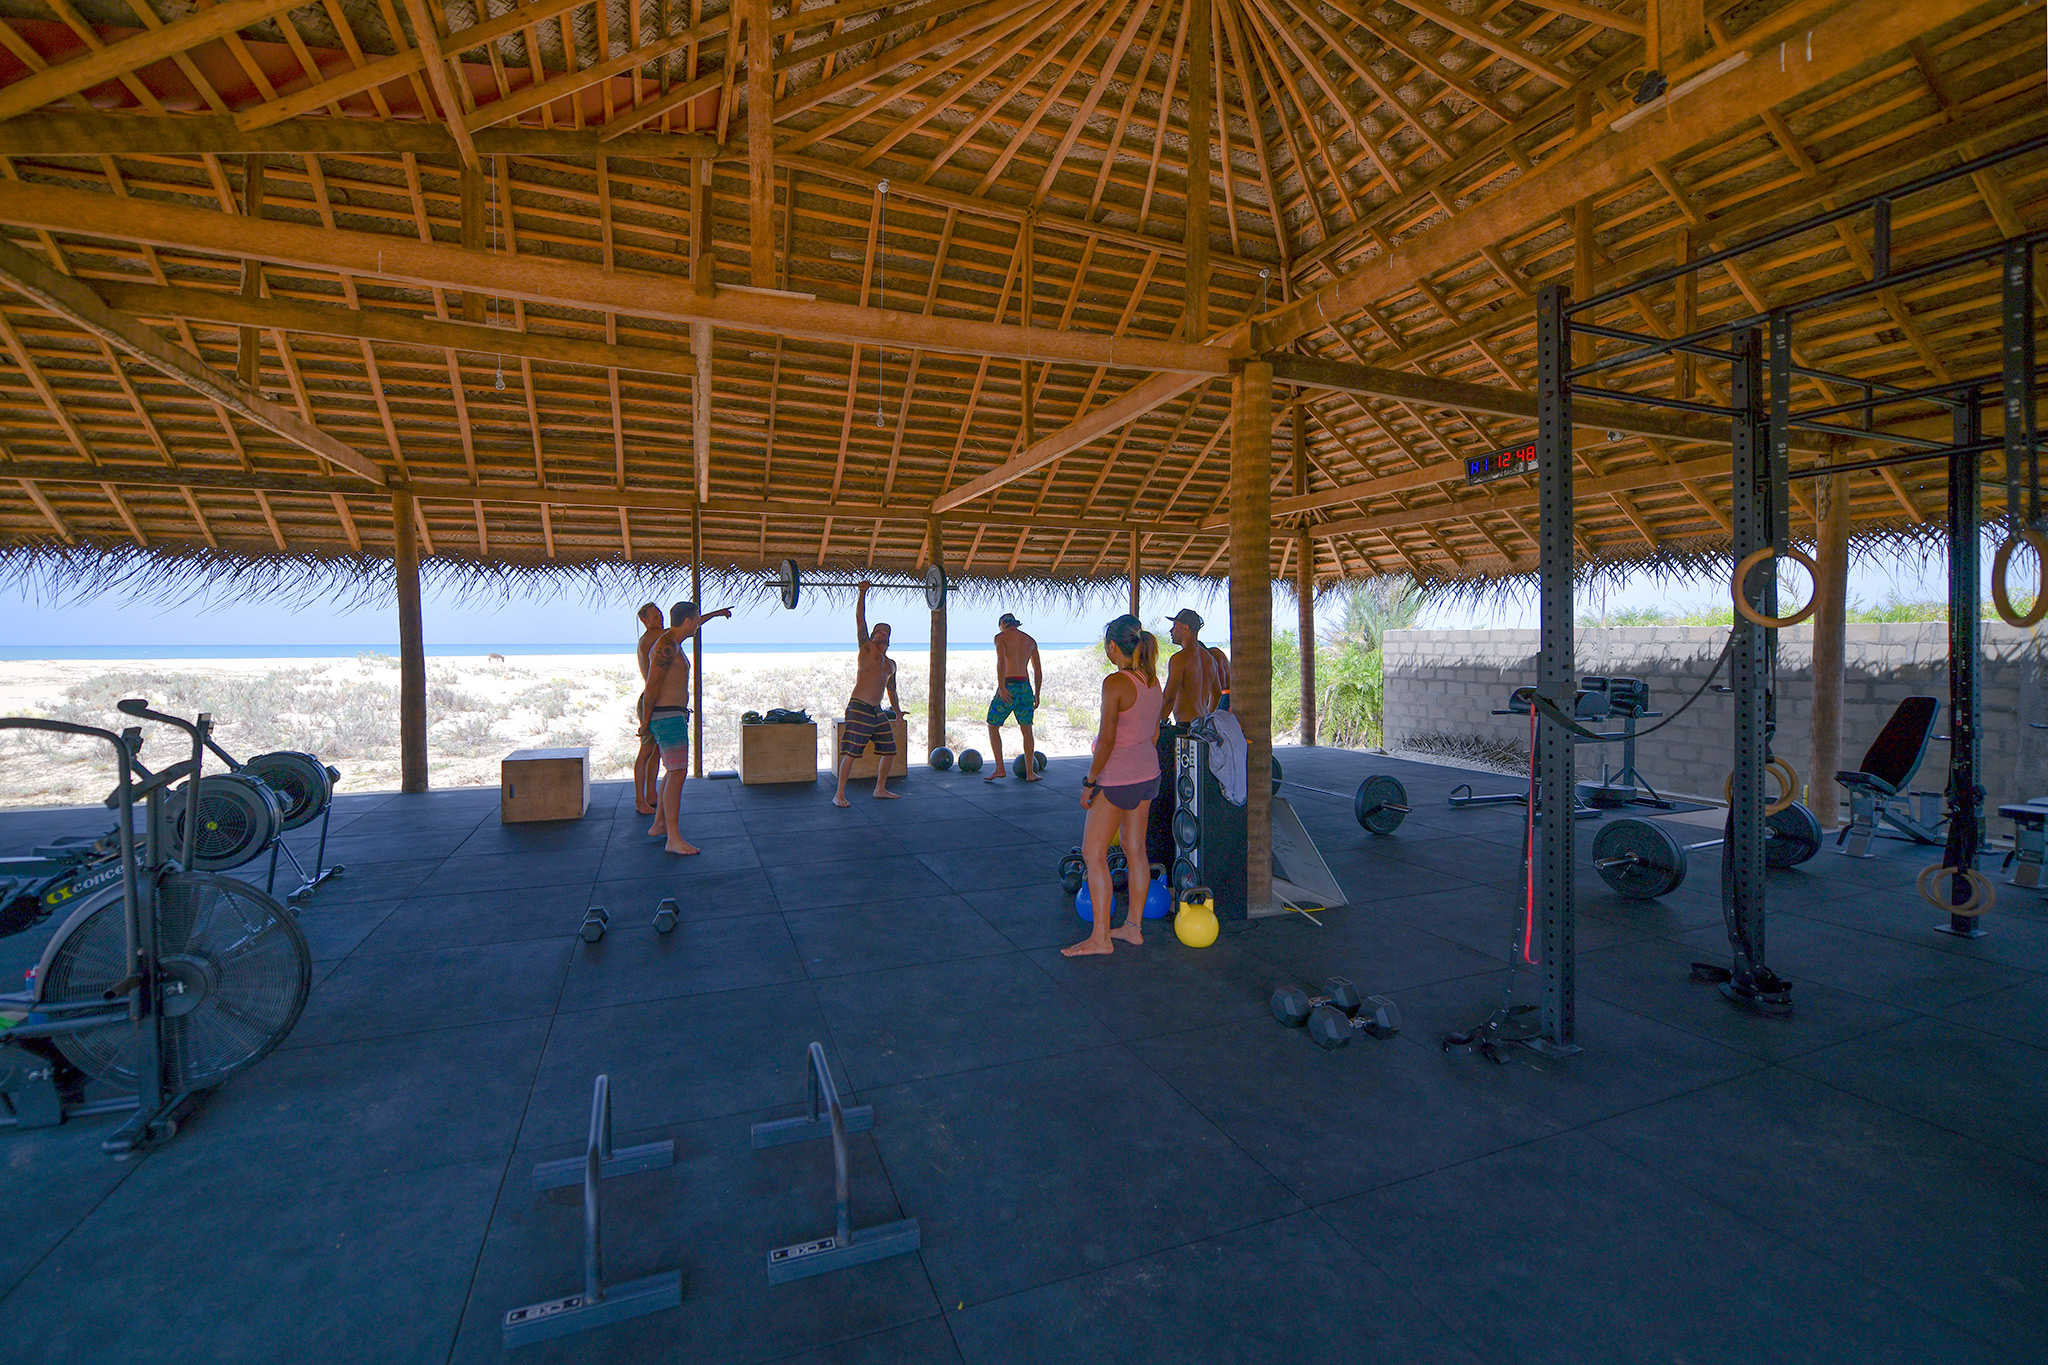 crossfit-beach-gym-sri-lanka